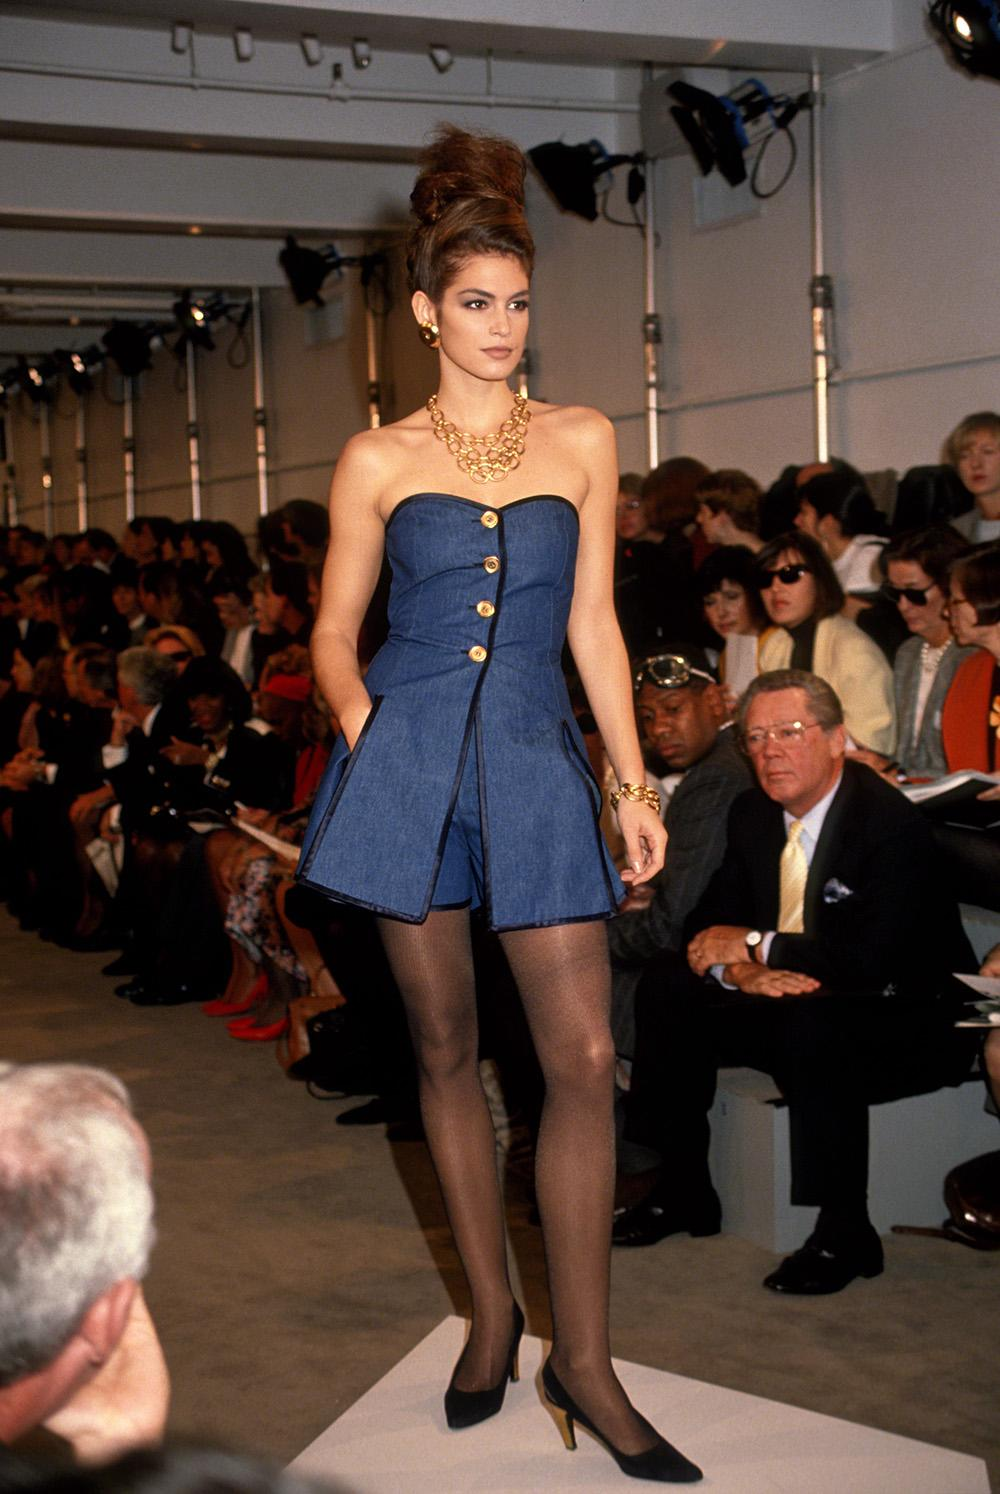 Cindy Crawford at the Donna Karan Spring 1991 in New York City. (Photo: Getty Images)